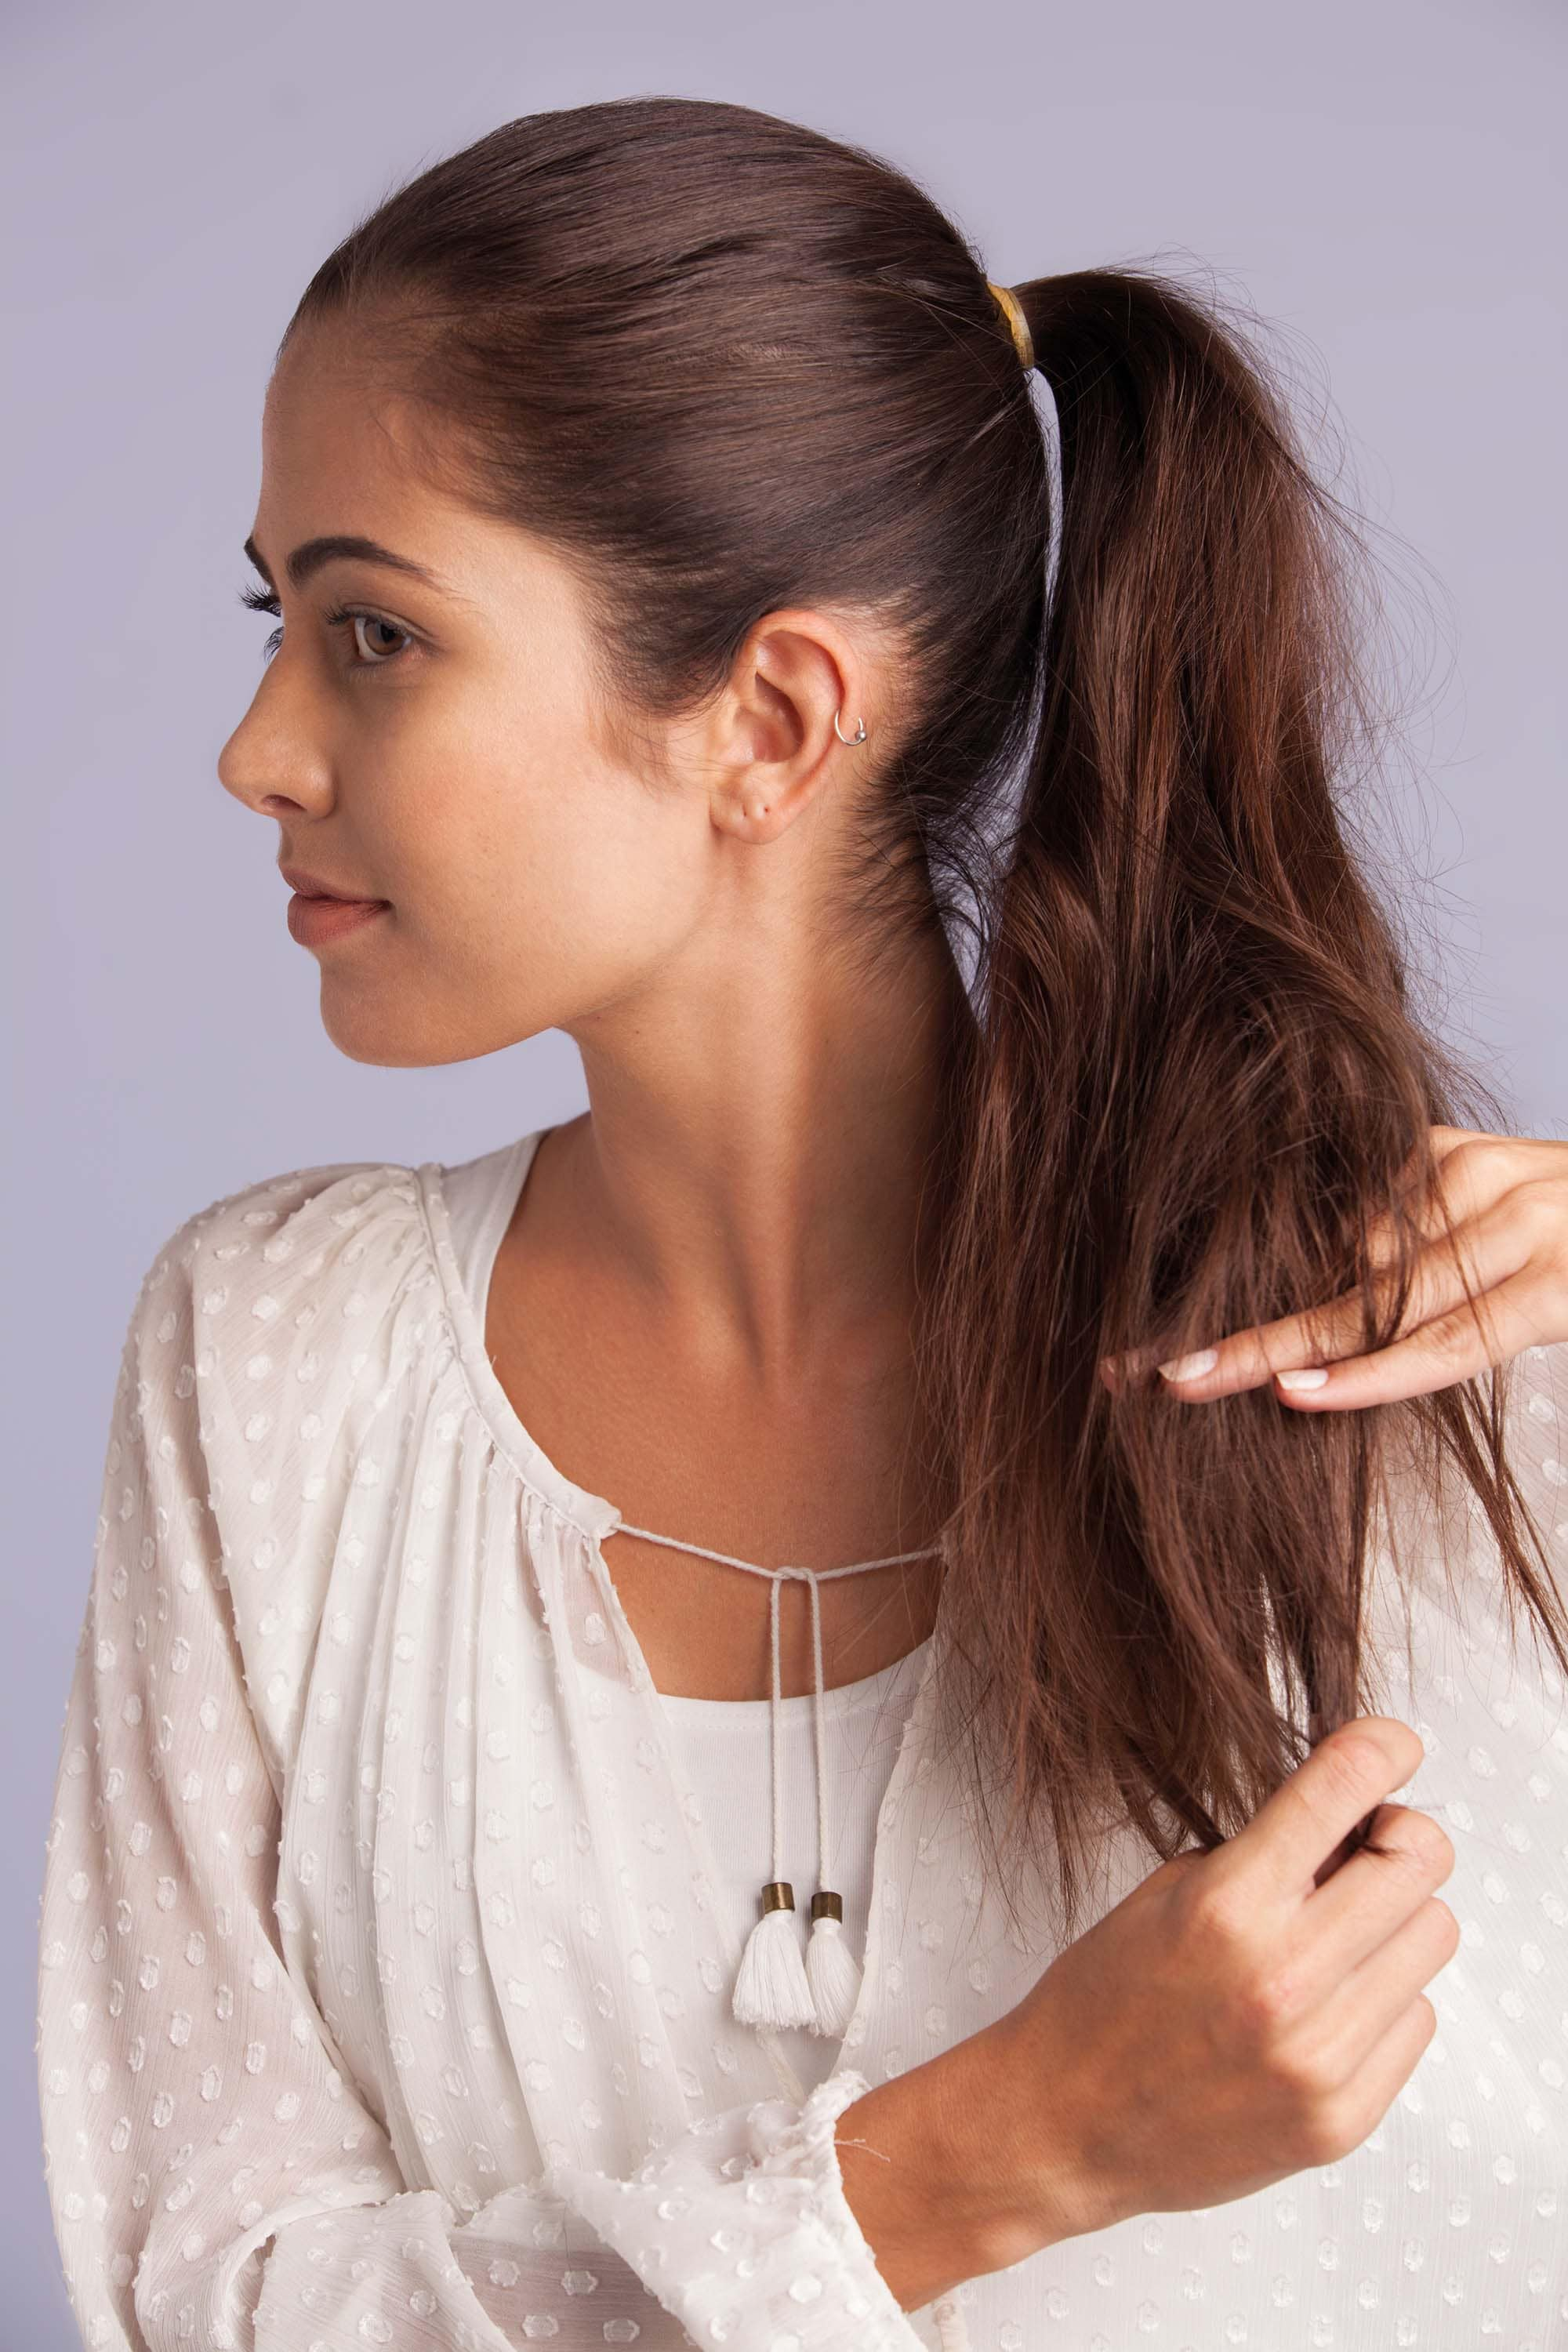 a woman combing her brunette ponytail hair with her hands wearing white clothes